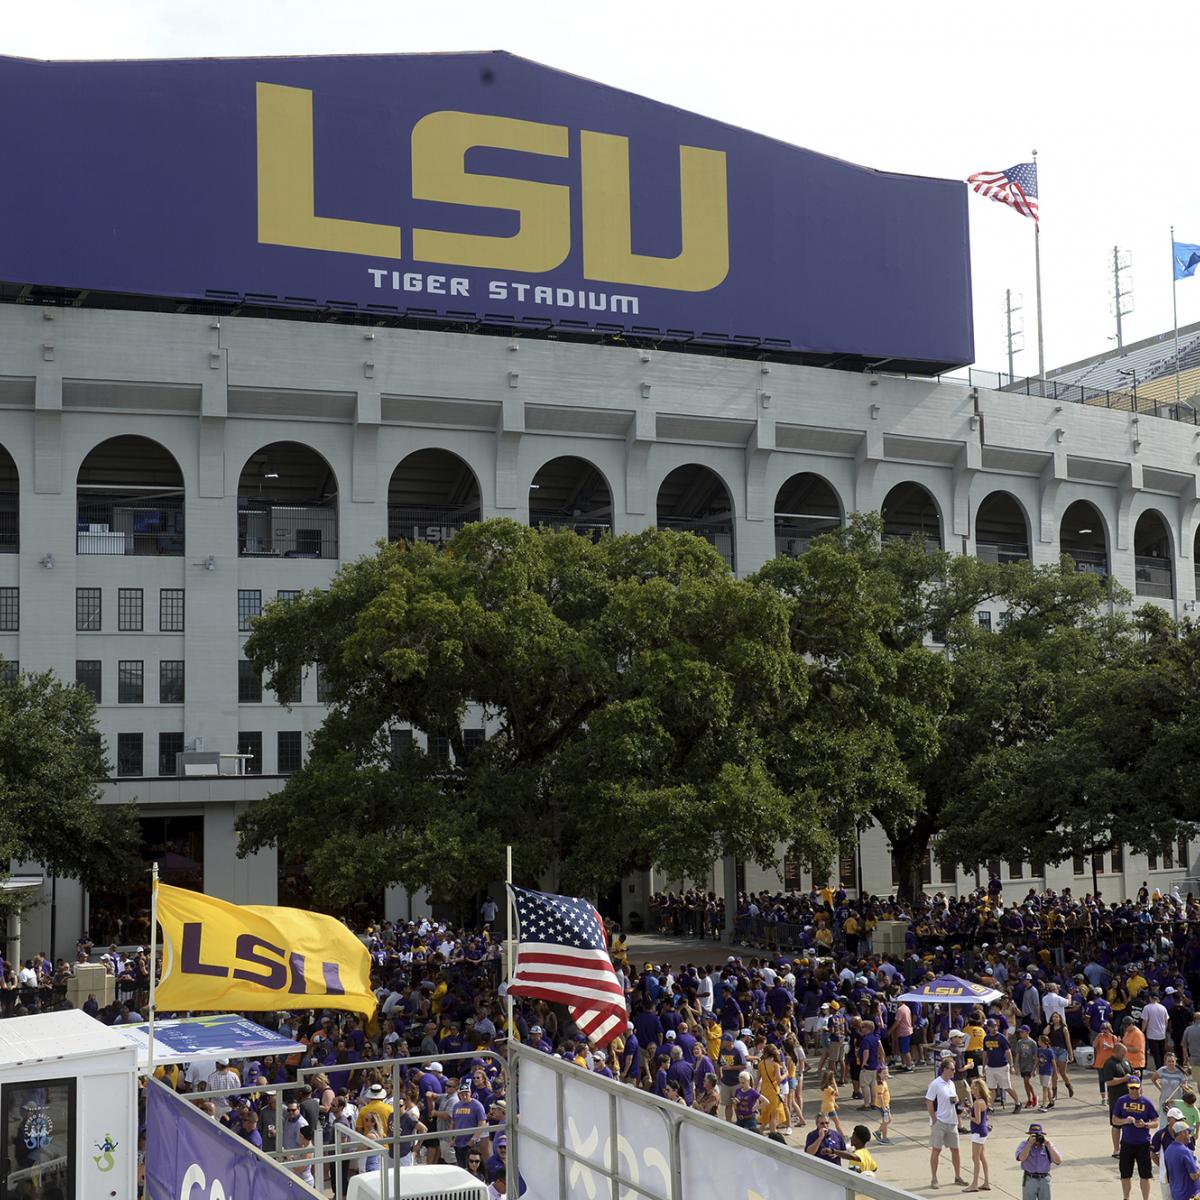 LSU Bans Tailgating Season, Sets Stadium Capacity at 26,000 Fans Amid COVID-19 thumbnail